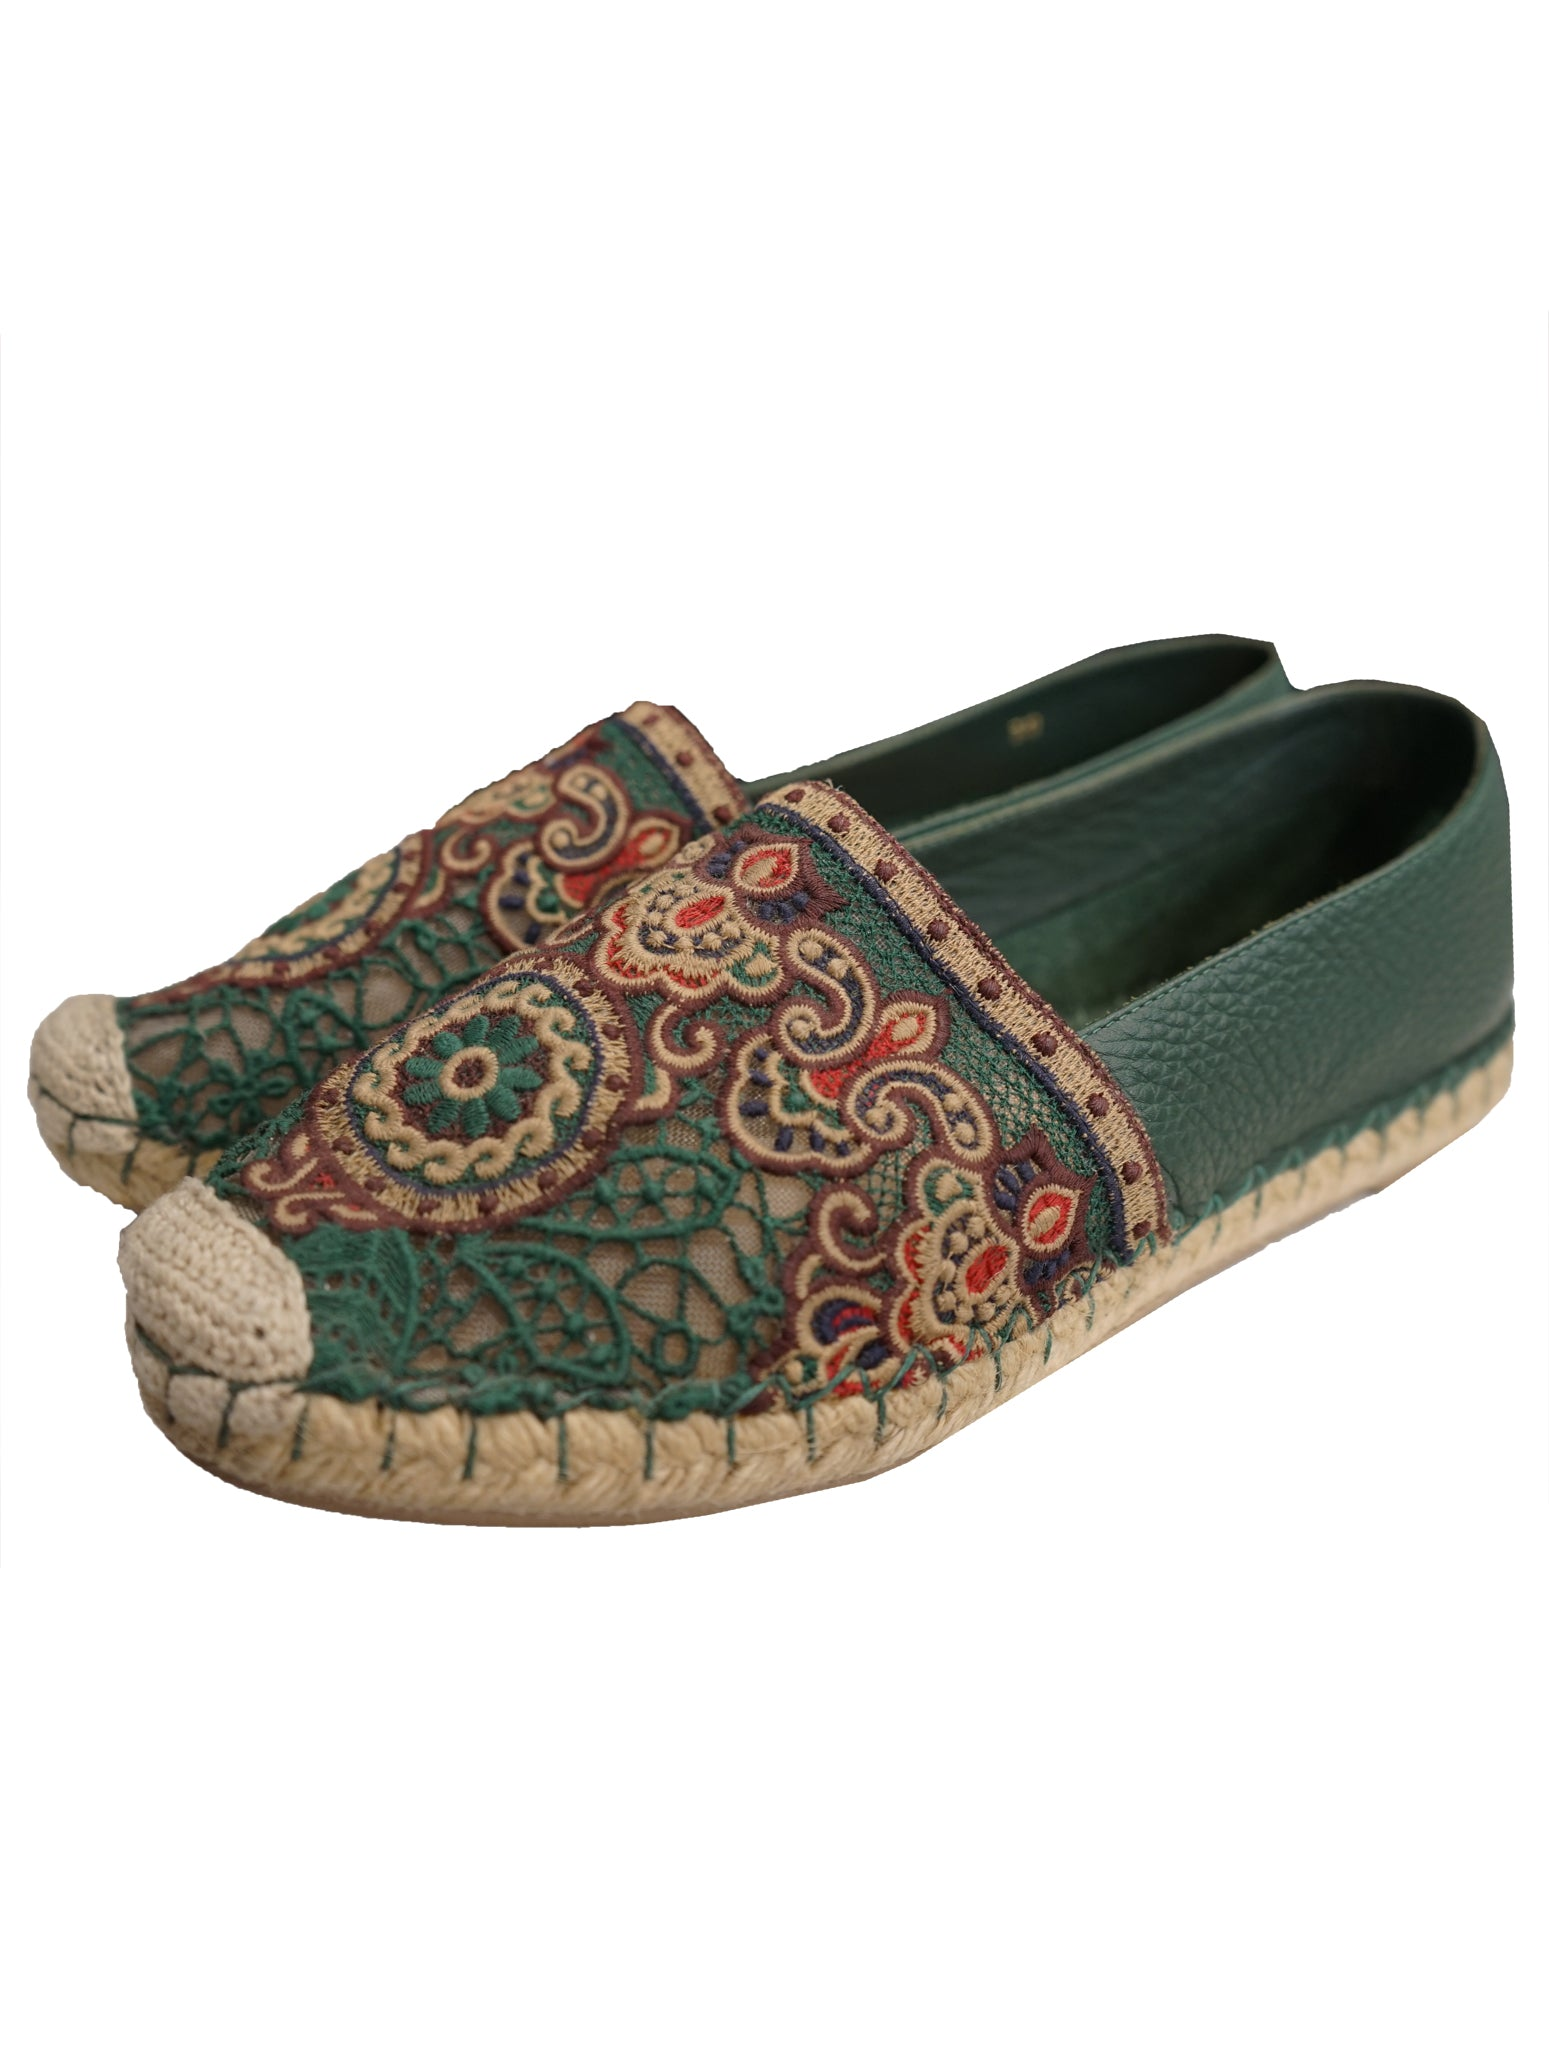 EMBROIDERED LACE ESPADRILLE